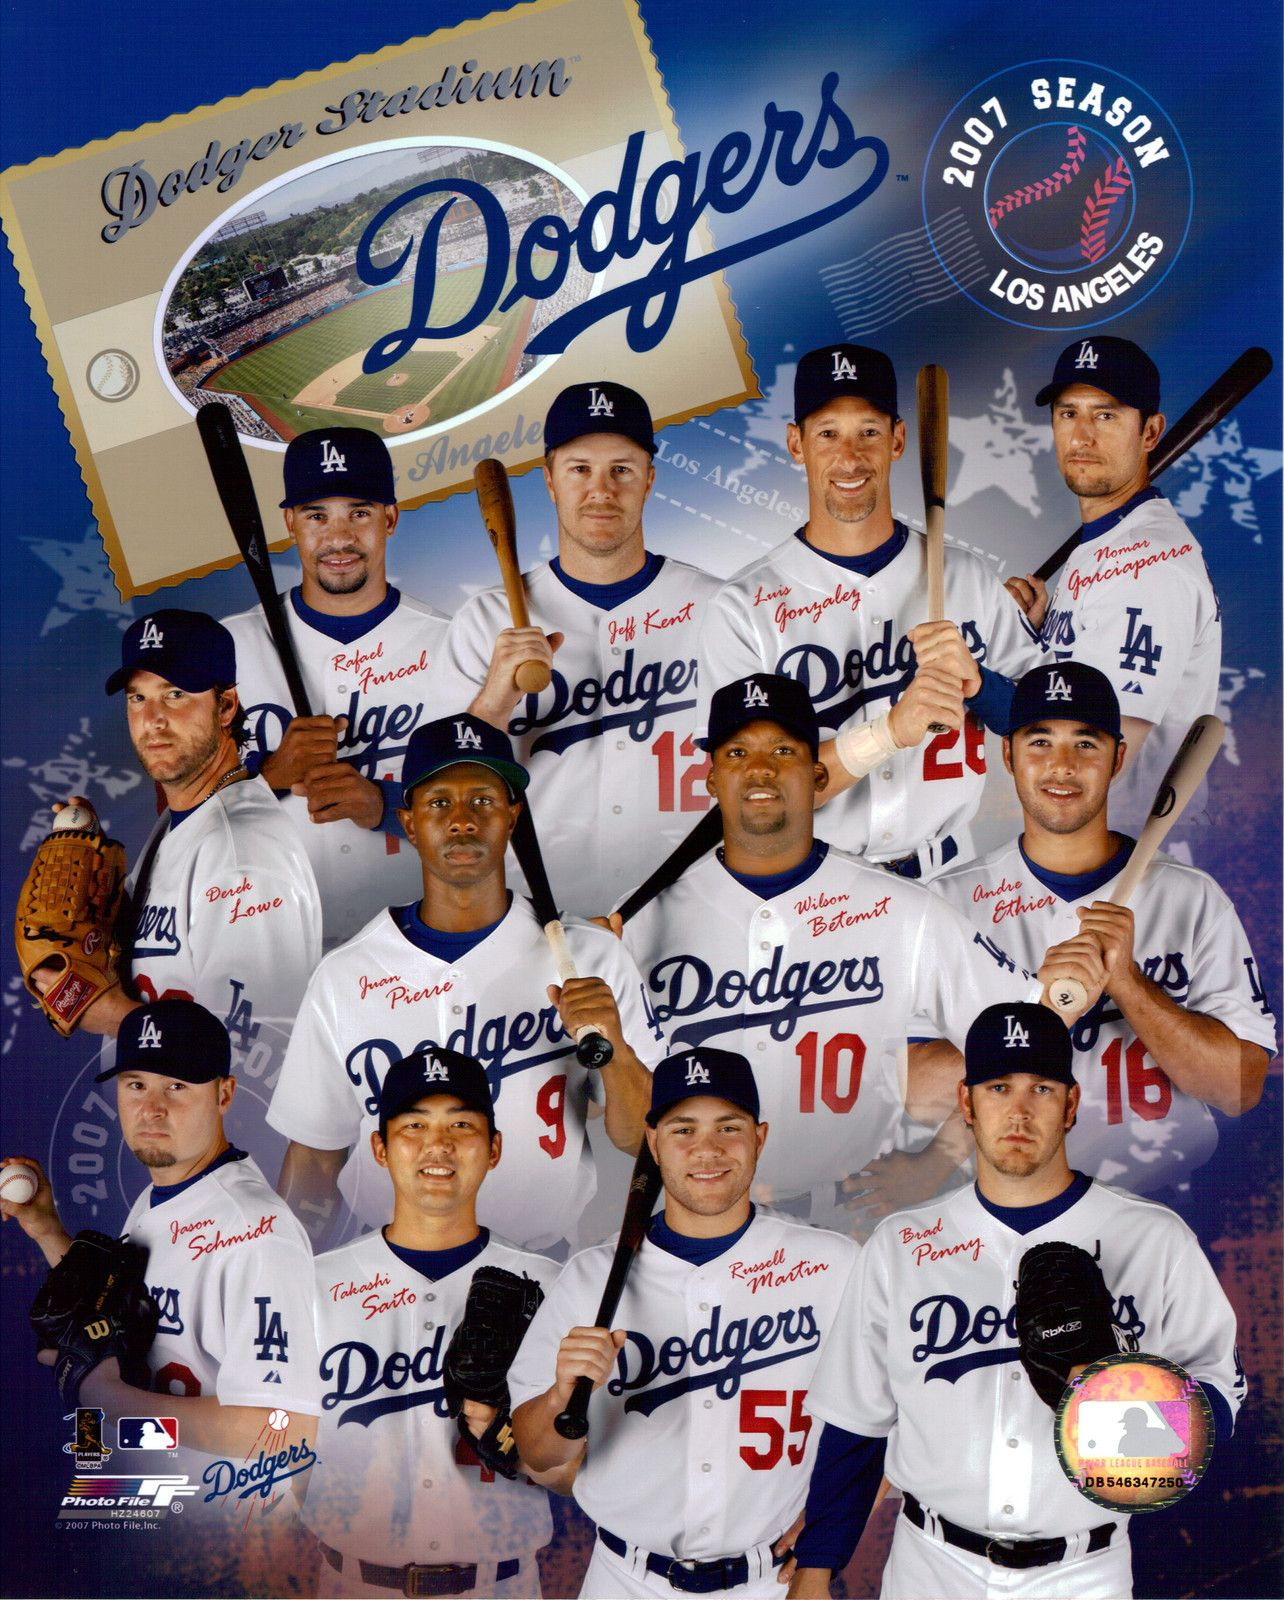 Los Angeles Dodgers 2007 Team Photo 8x10 Color Glossy Dodgers